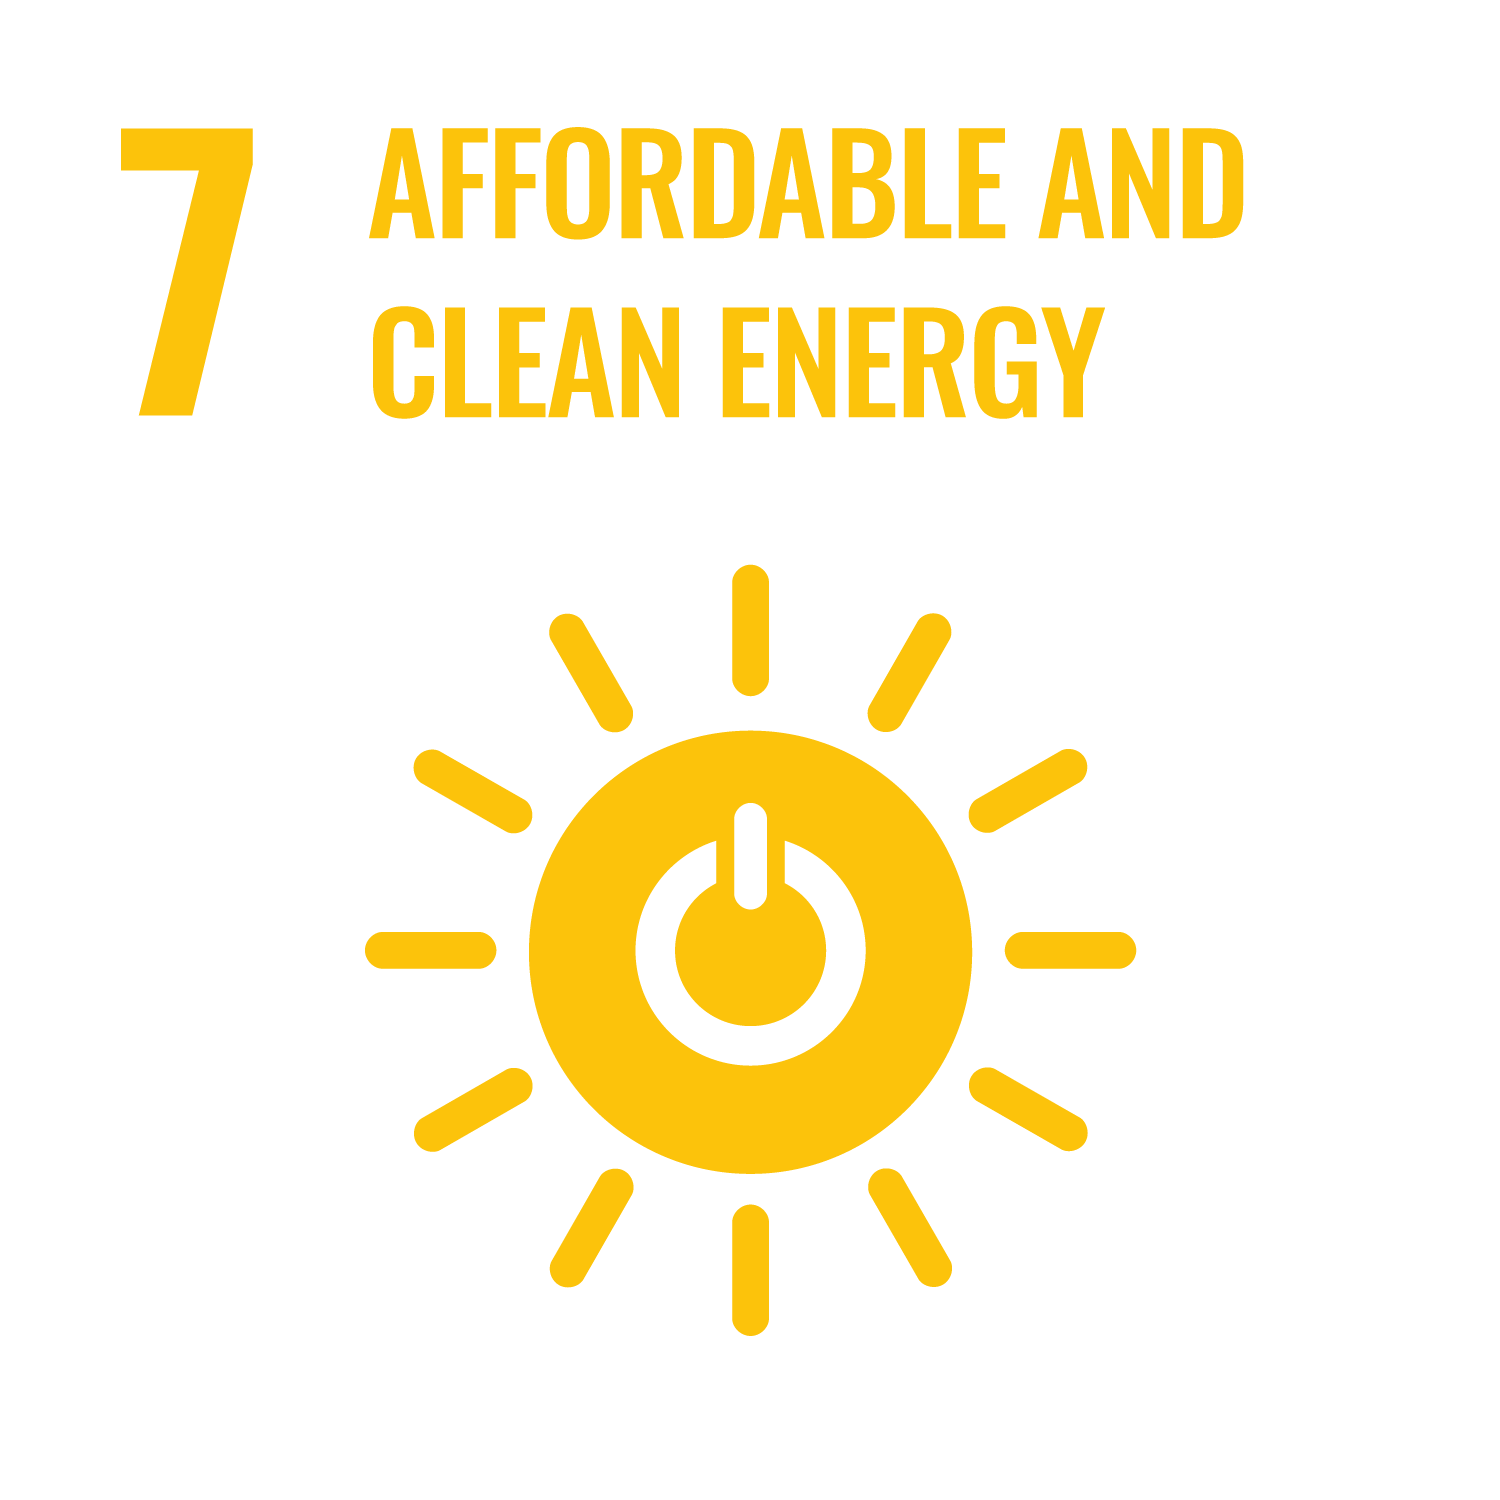 United Nations Sustainable Development Goals - Affordable and clean energy